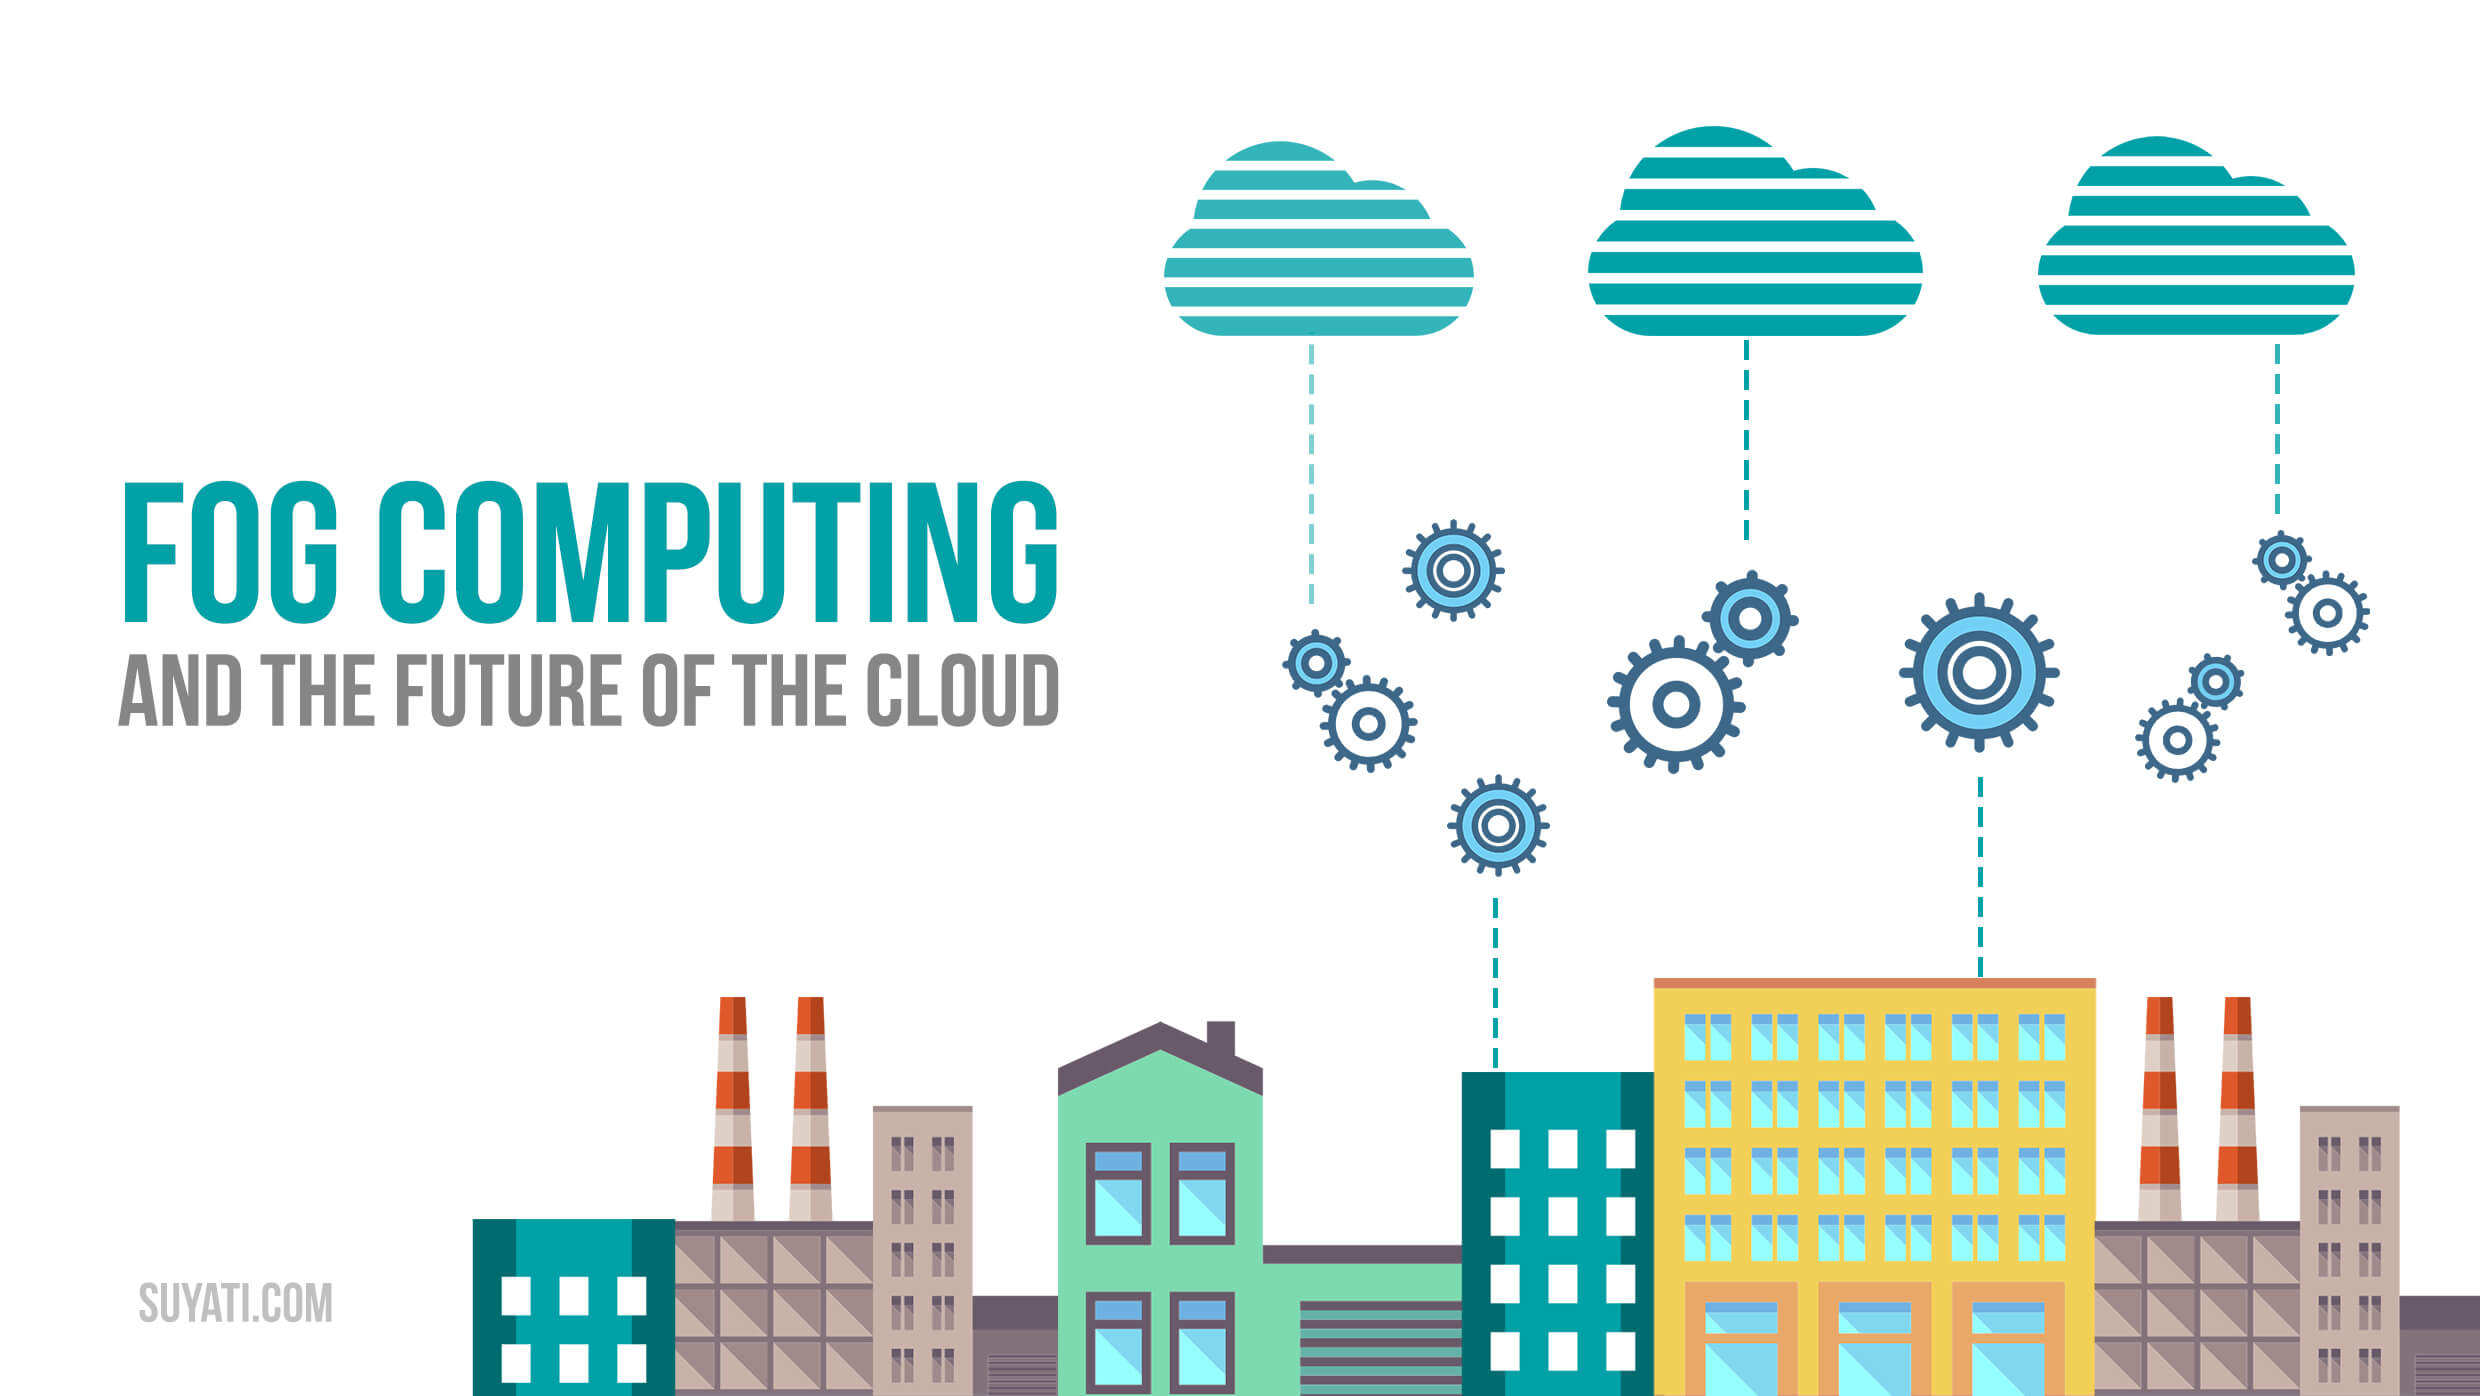 Fog Computing and the Future of the Cloud